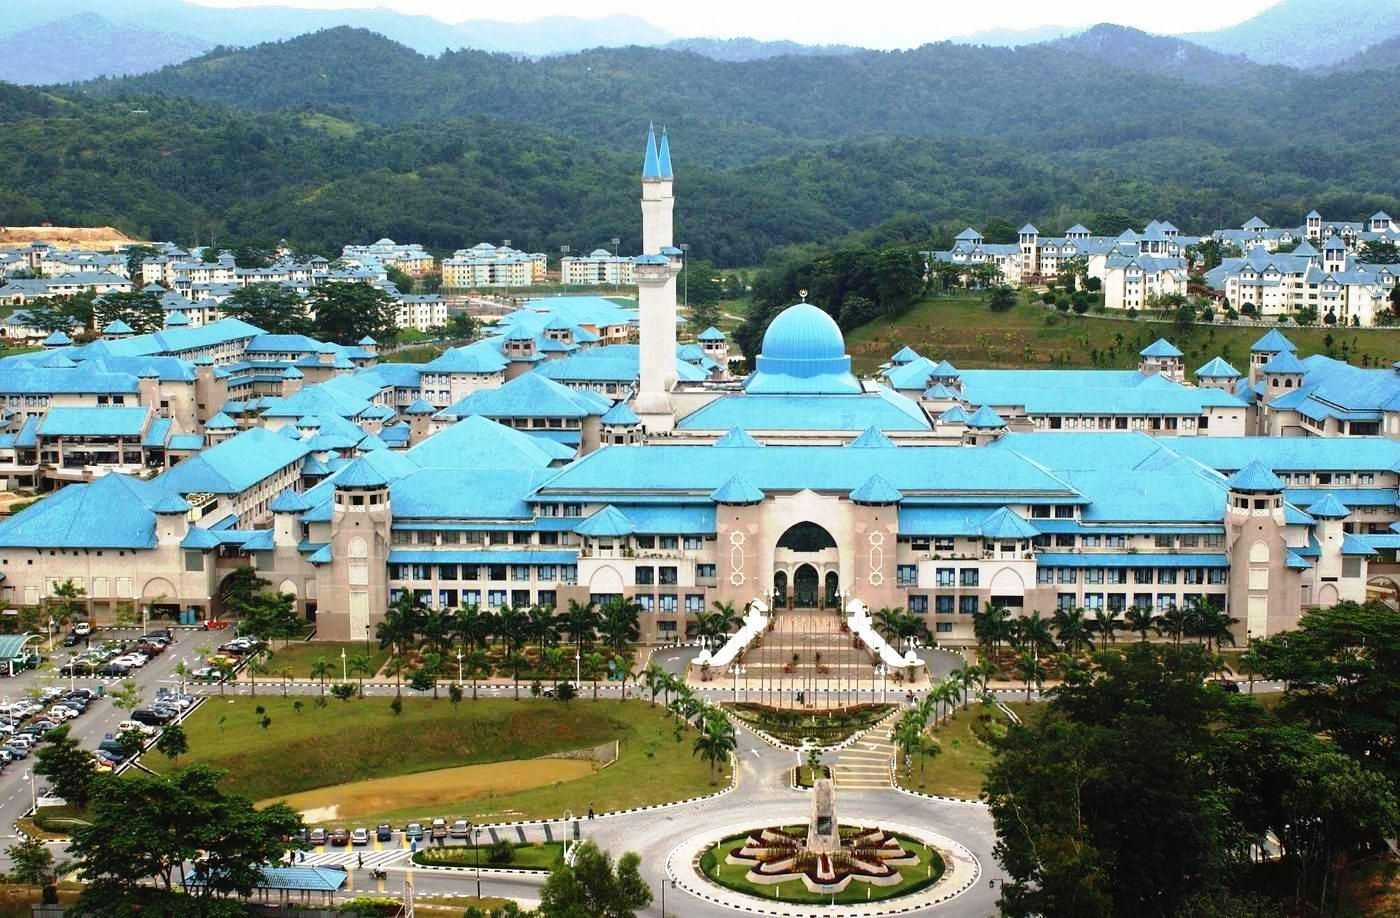 The International Islamic University Malaysia Also Known As Iium Or Uiam Is A Public Publicly Funded University In M Faculty Of Science University Study Trip